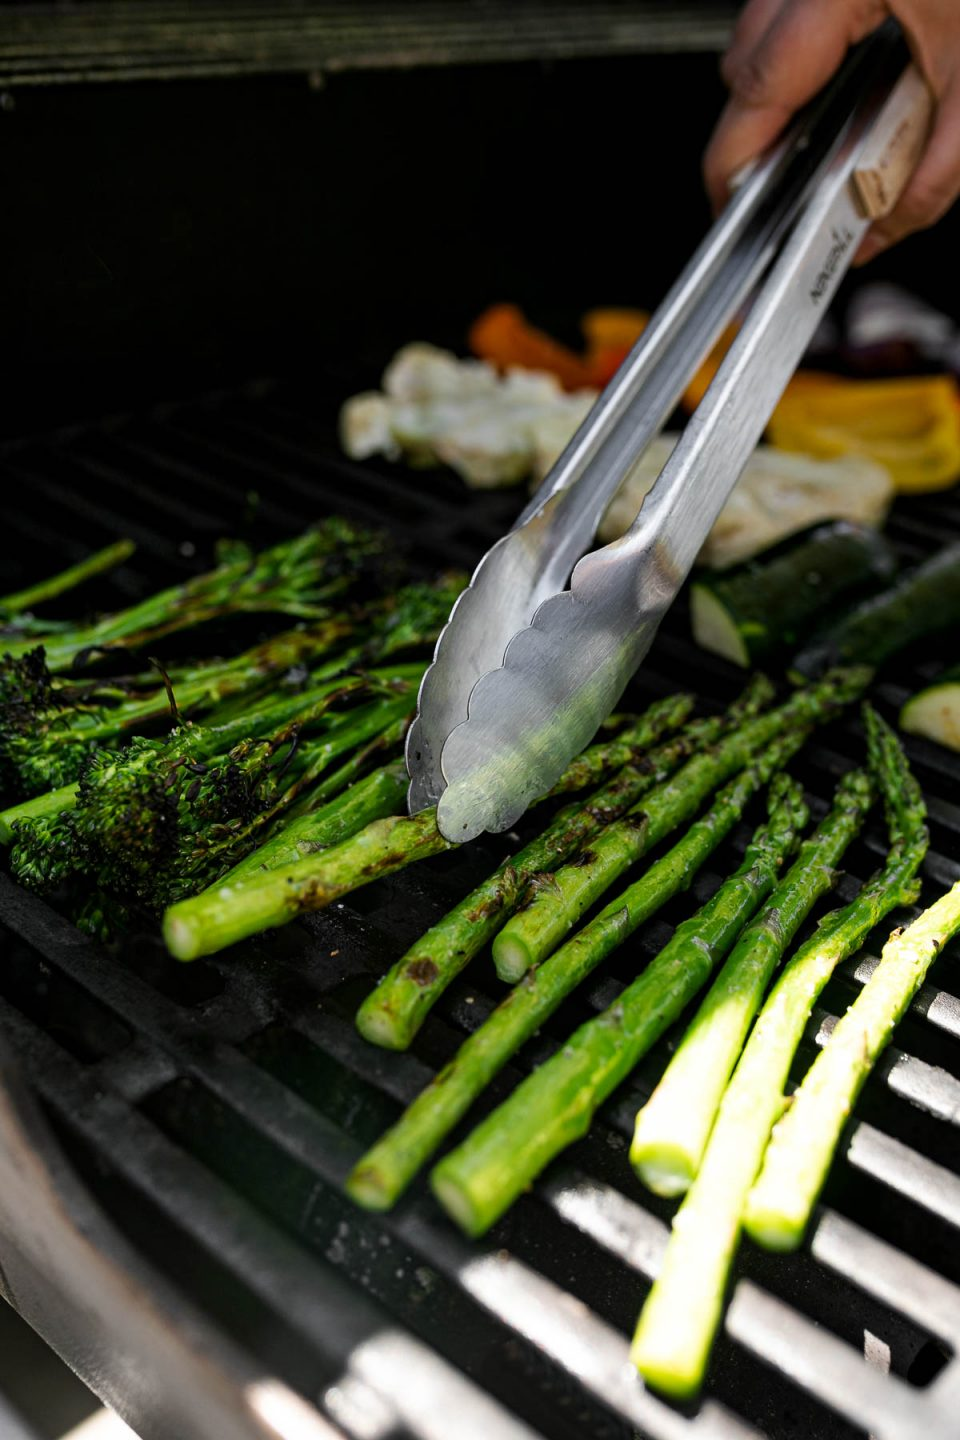 An angled shot of a variety of grilled veggies including grilled broccolini, grilled asparagus, grilled cauliflower, grilled zucchini, grilled onion, & grilled peppers that are being grilled on gas grill grates. A woman's hand holds a pair of tongs that are picking up a stalk of grilled asparagus & rotating it on the grill grates. Many of the veggies have grill marks on them after being flipped to the other side.